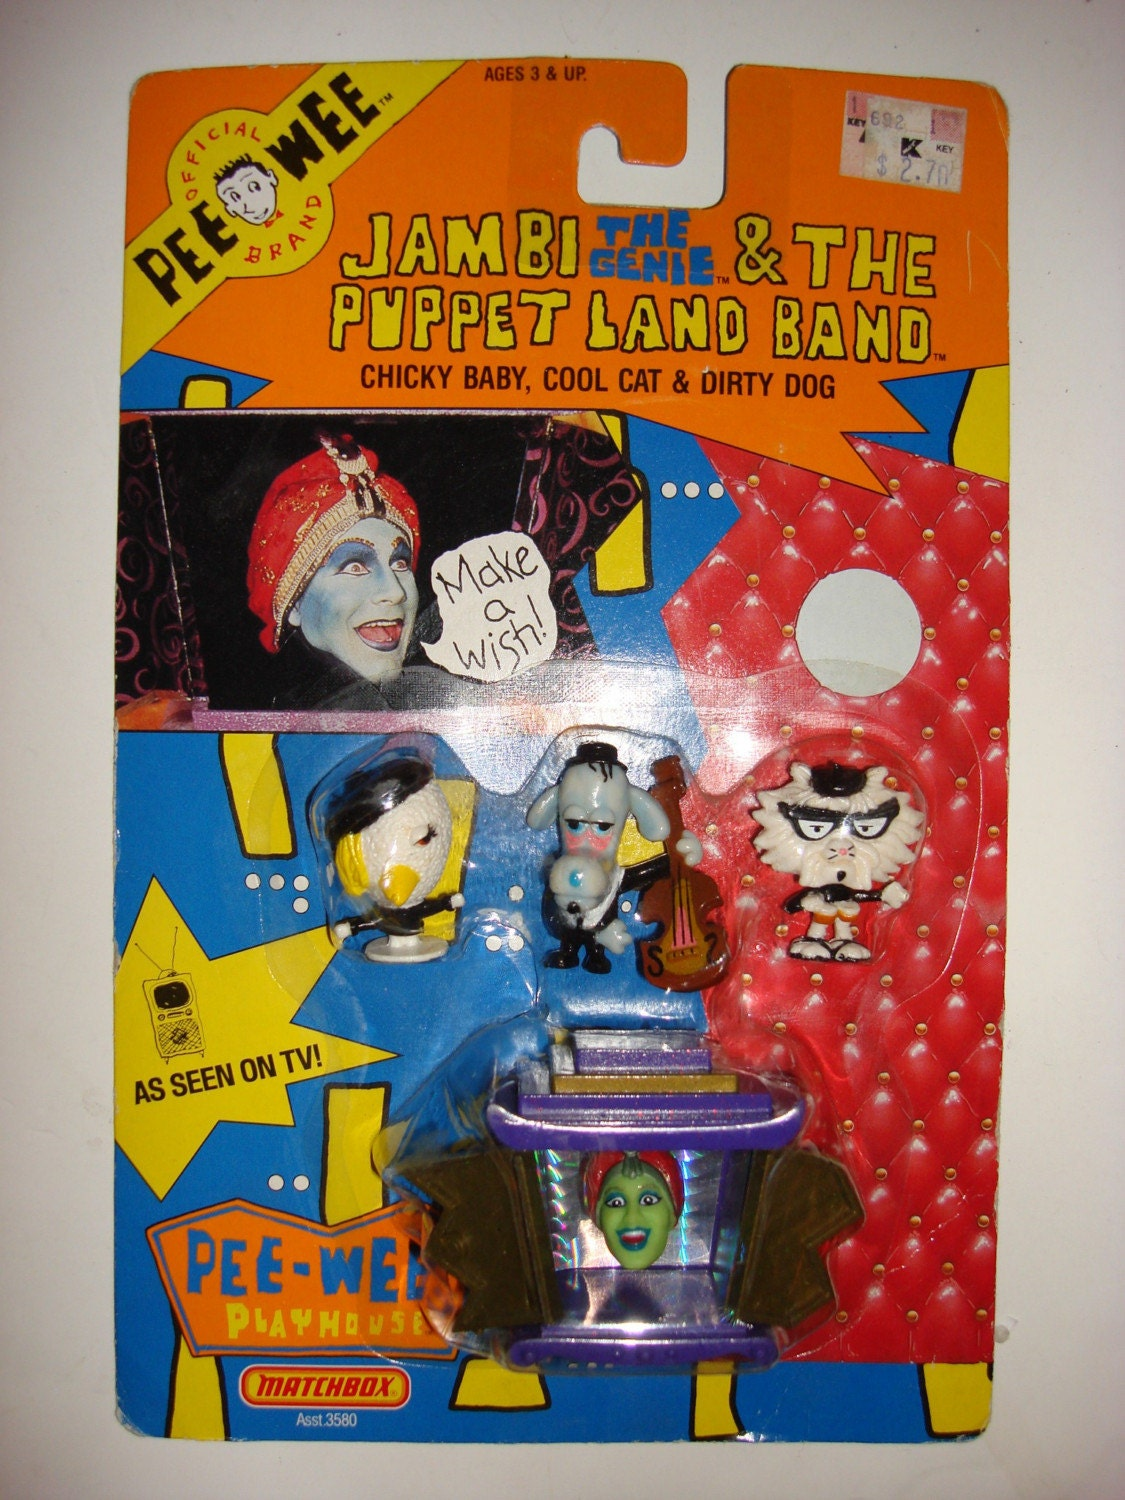 Official Pee Wee Herman Brand Figurines 1988 by TheTimeTunnel